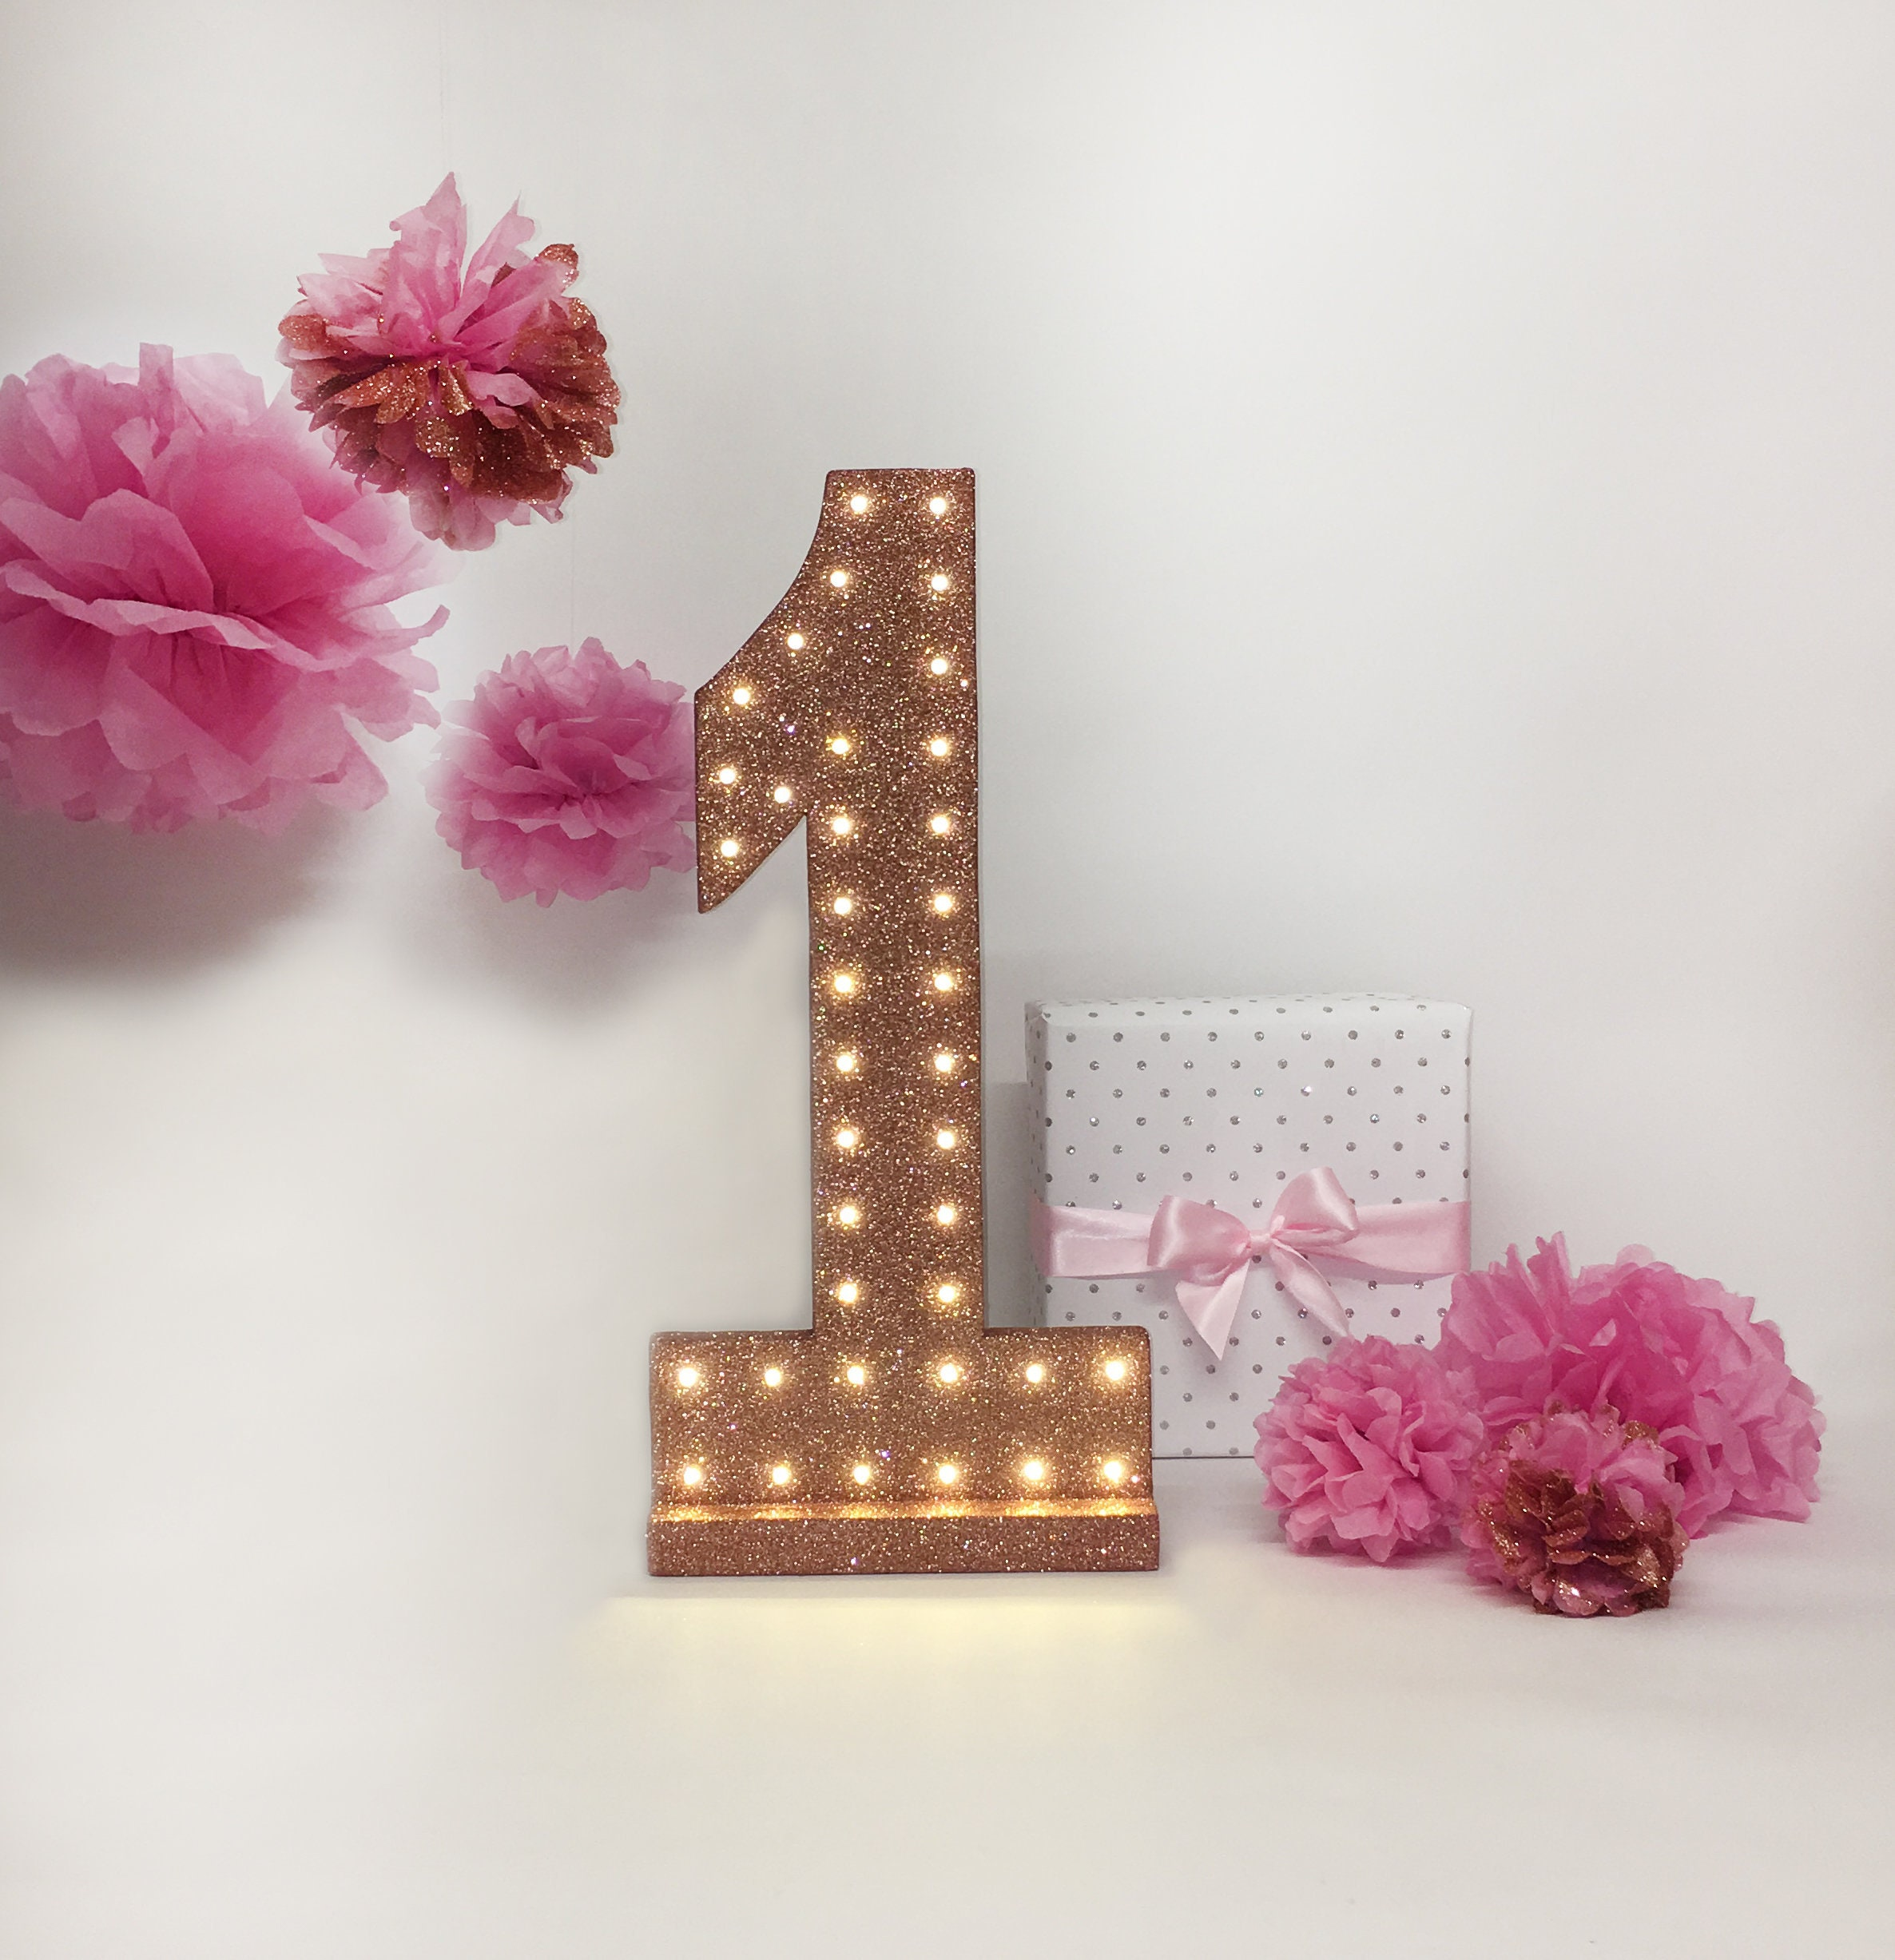 Deco Rose Fushia Salon 1st birthday party decor, rose gold 20inch number, light up number, girls  birthday party decoration, table centrepiece, self standing number